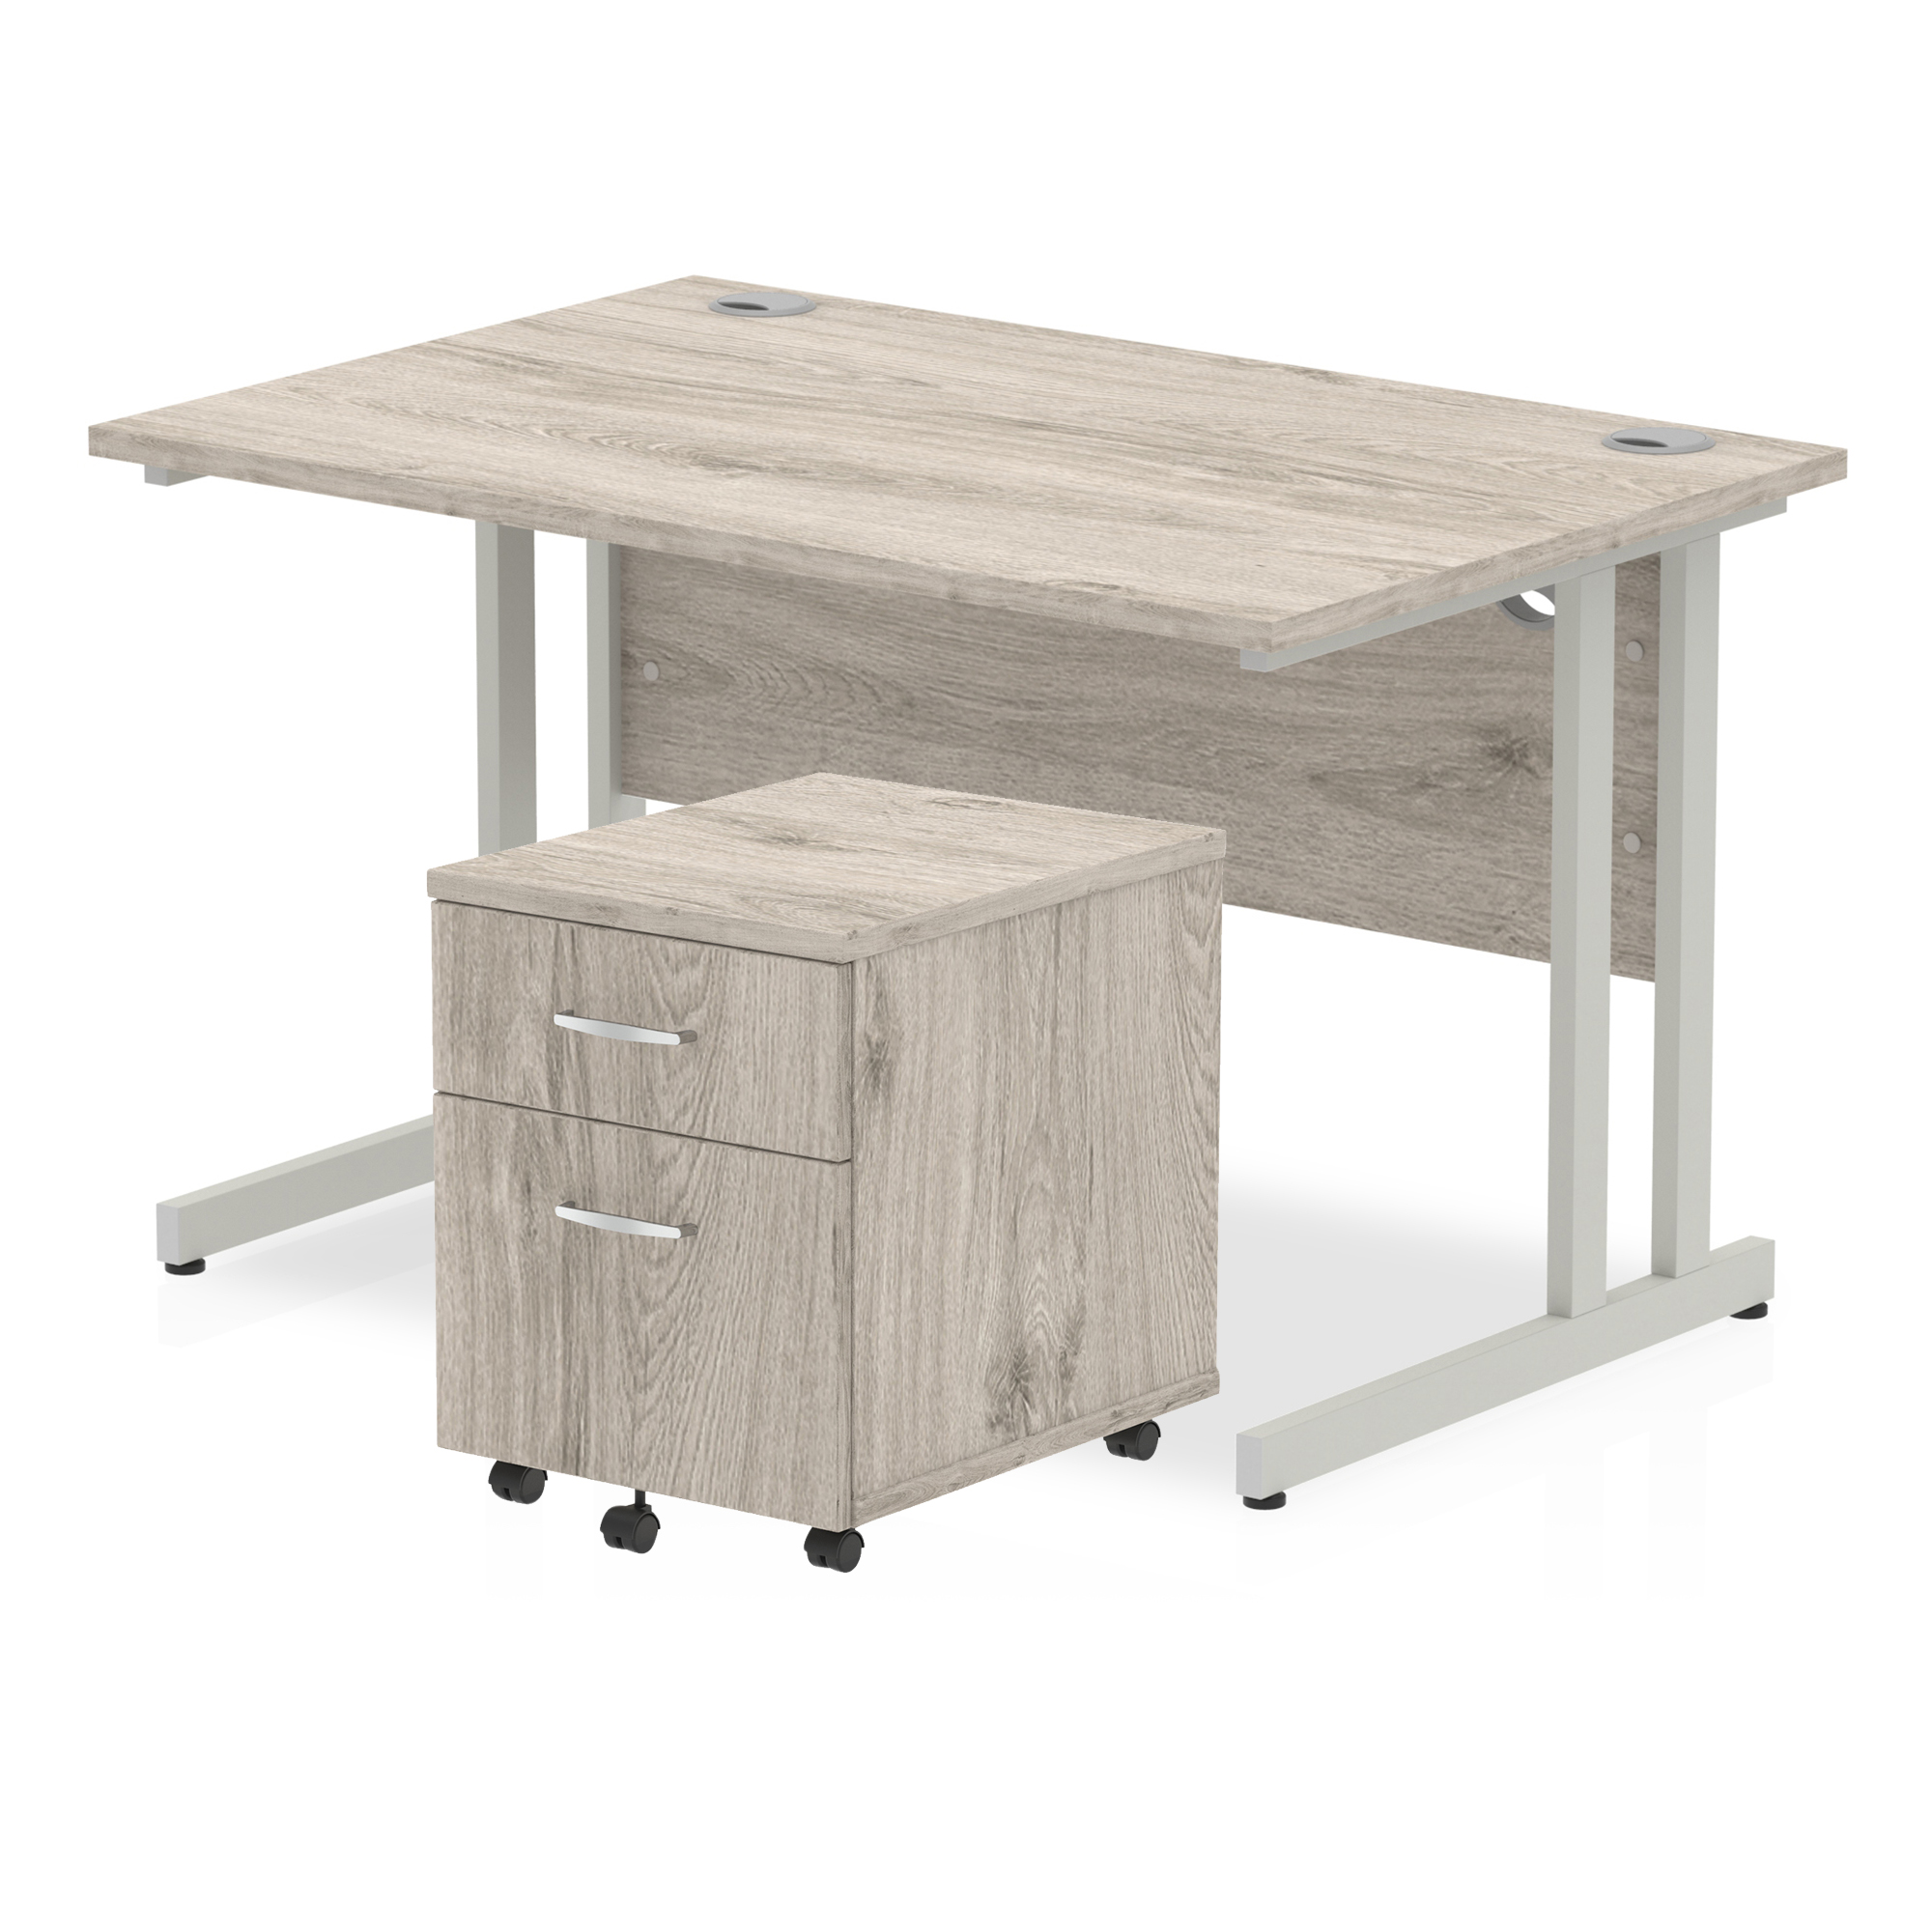 Desks Trexus Cantilever Desk 1200x800 & 2 Drawer Pedestal Grey Oak Bundle Offer Feb-Apr 2020